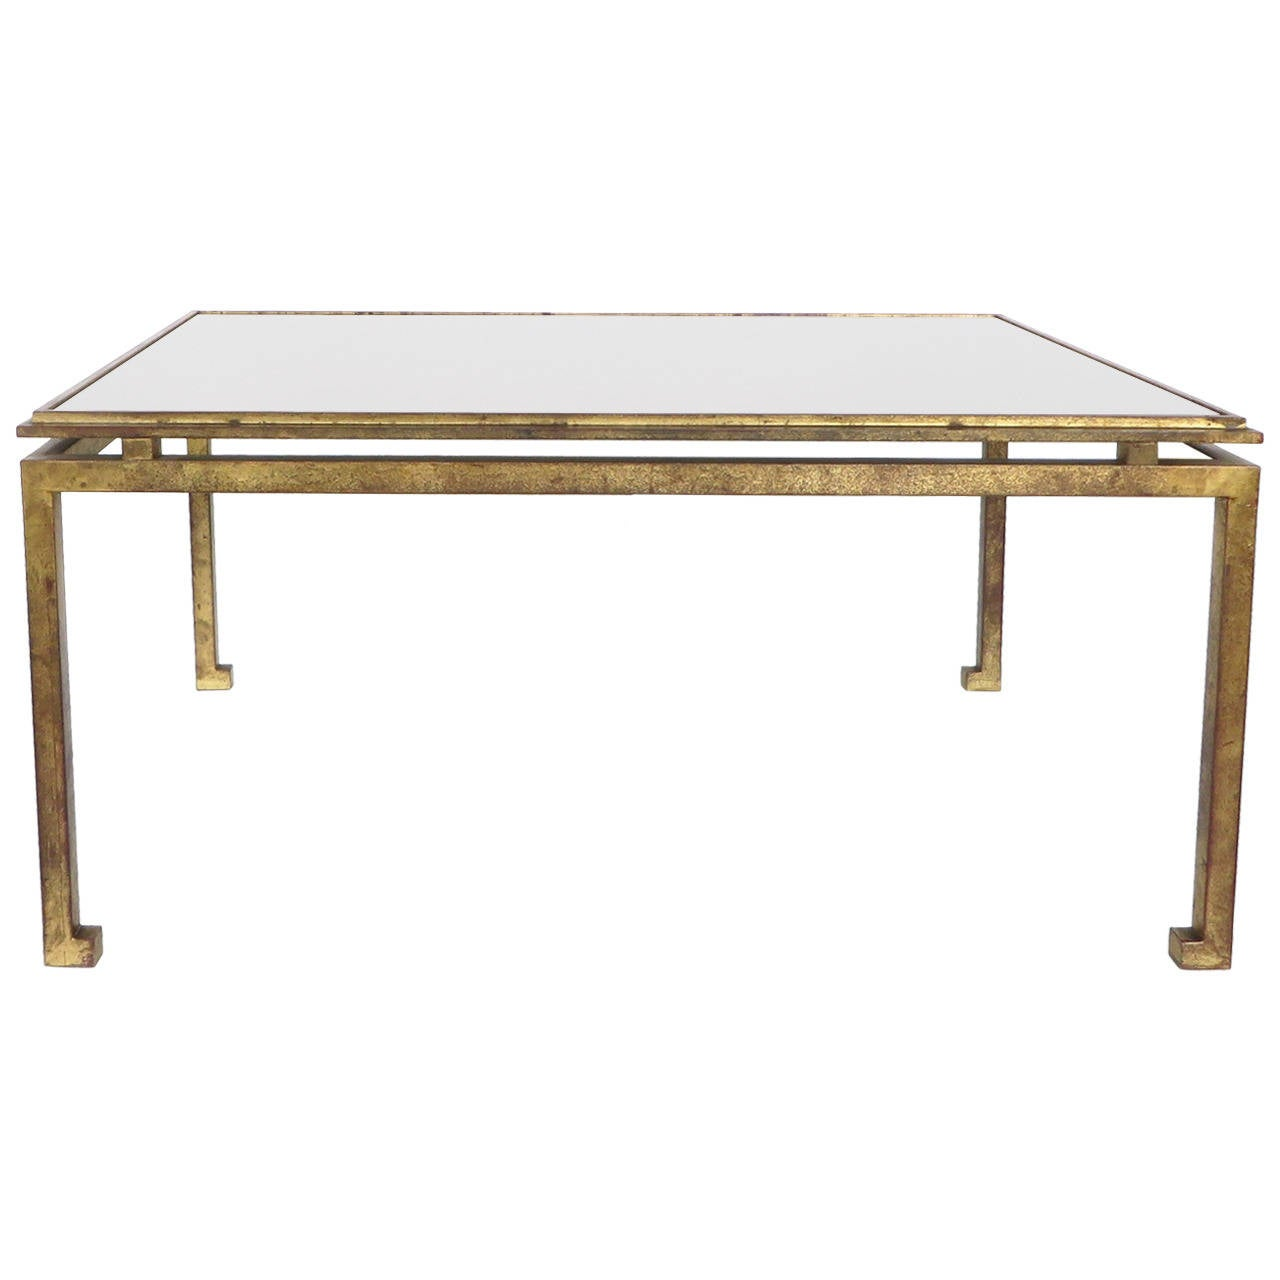 Iron Coffee Tables Maison Ramsay French Patina Gold Leaf Wrought Iron Coffee Table